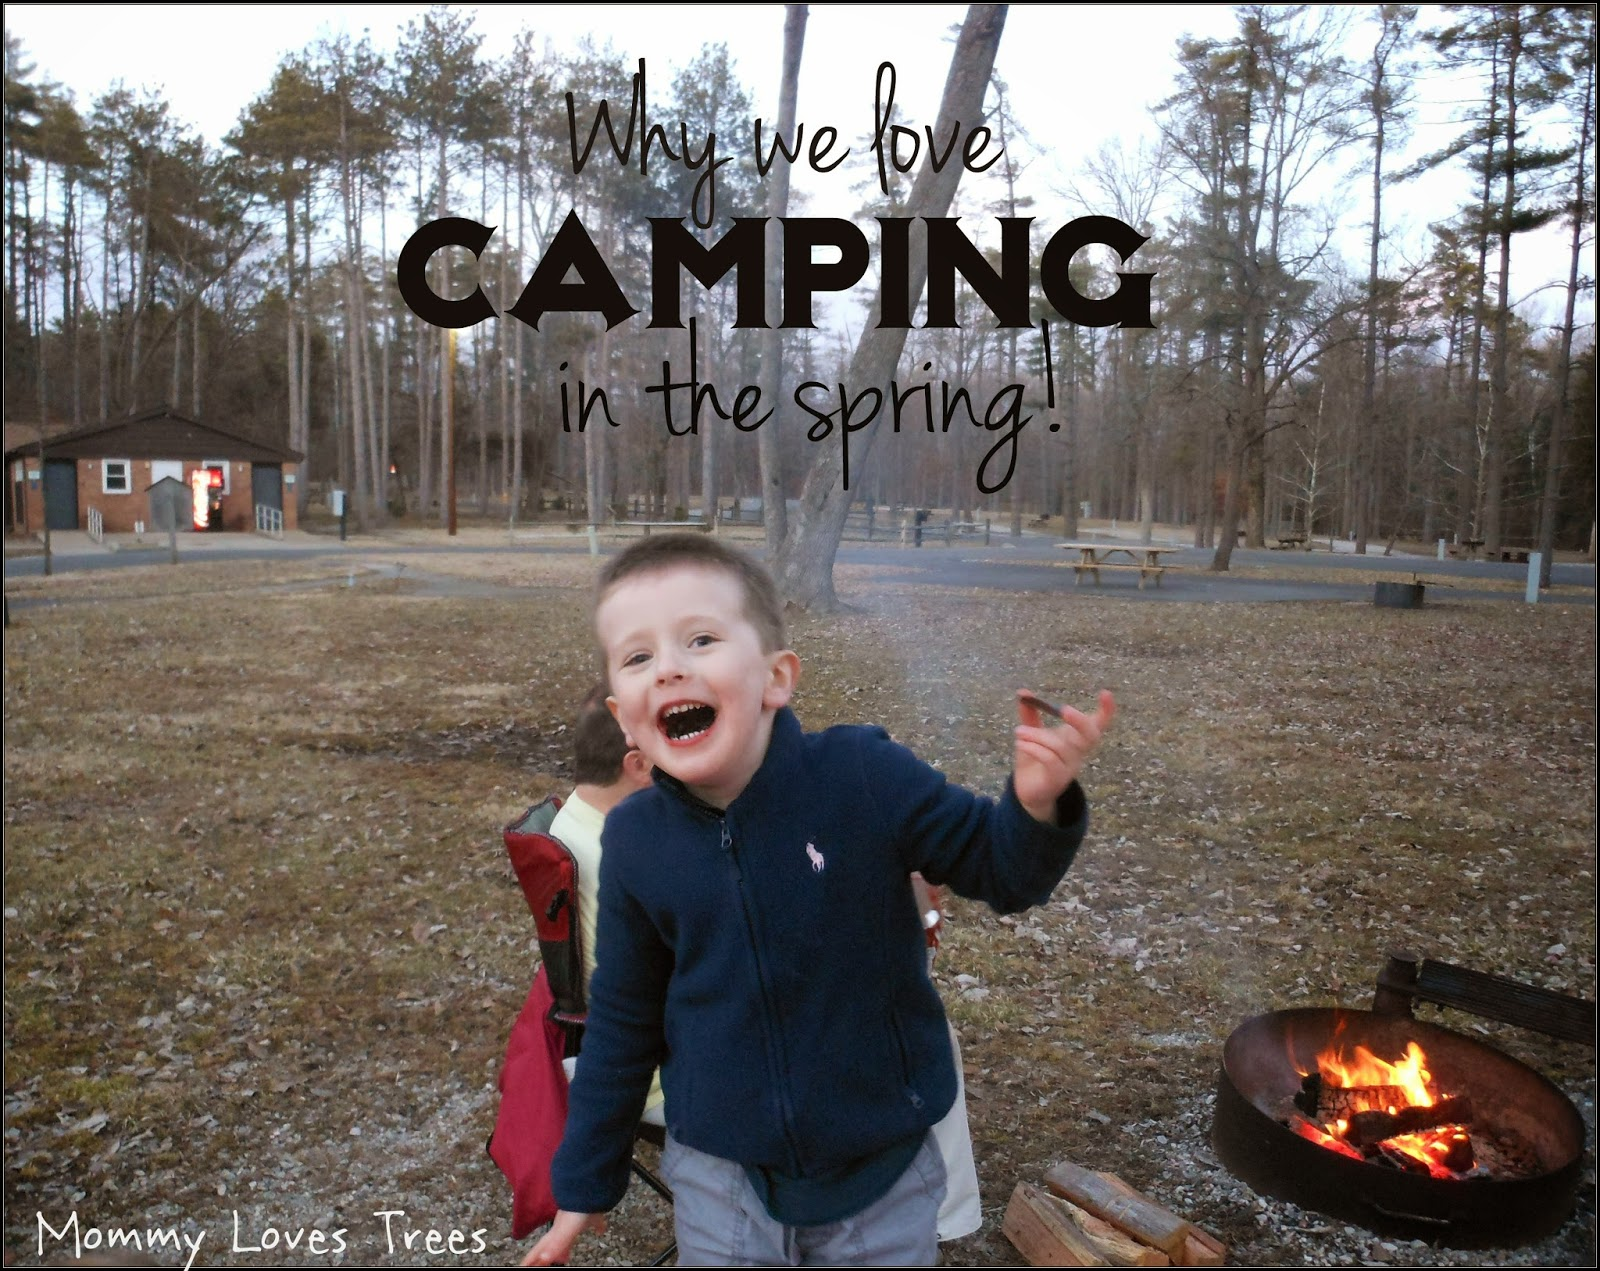 Why we love camping in the spring.